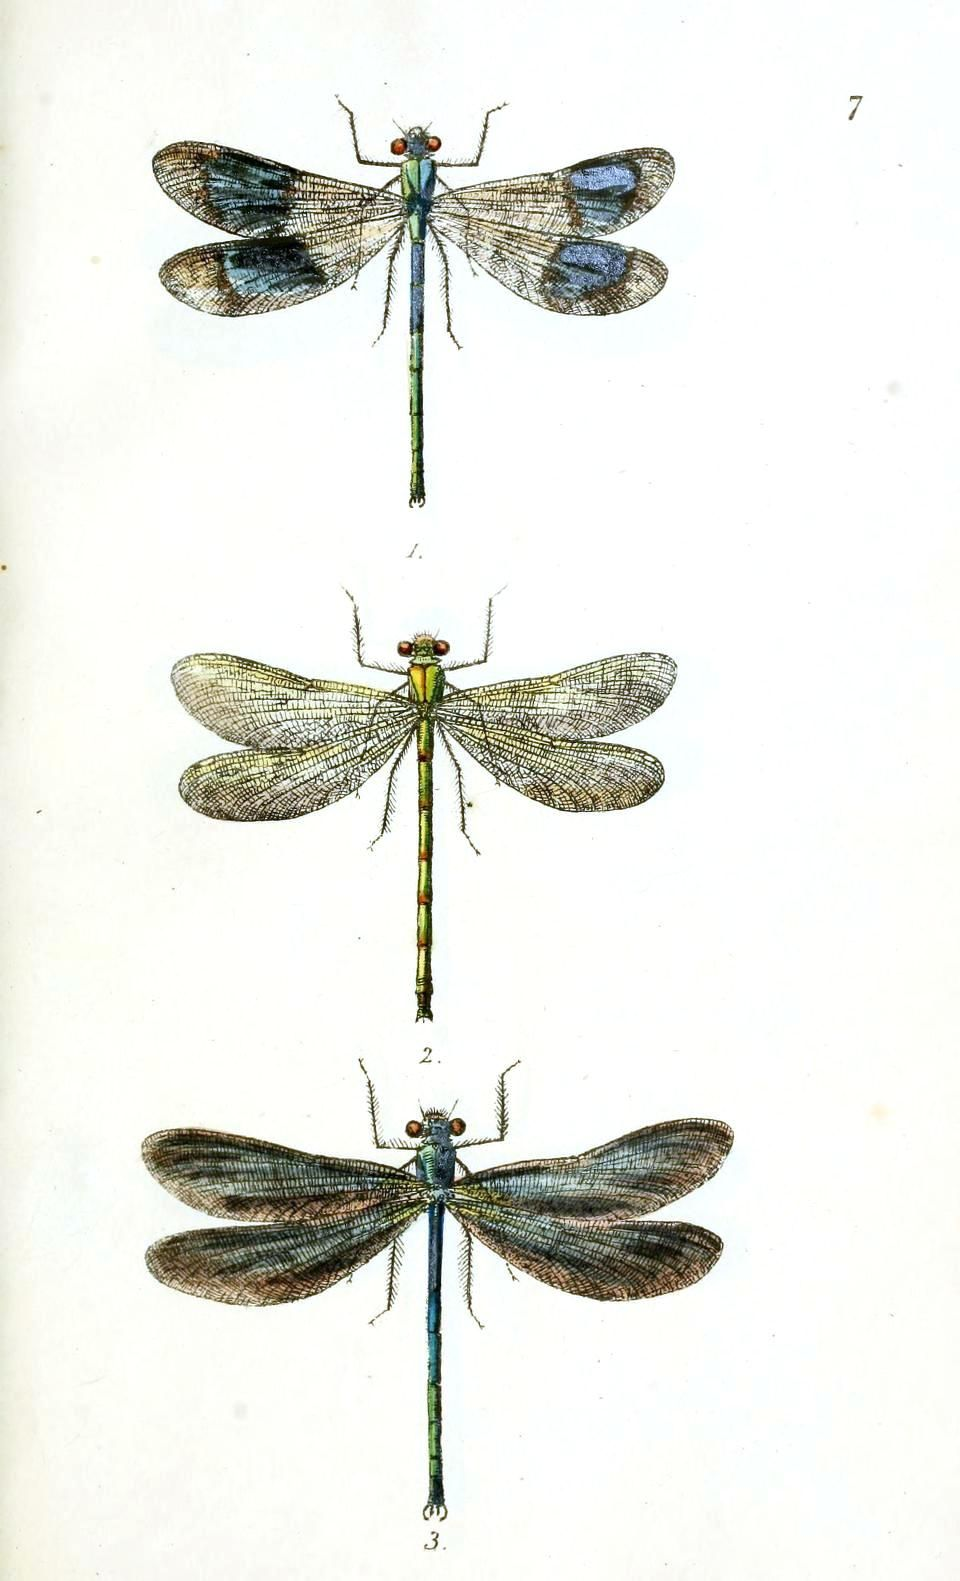 vintage dragonfly prints | Animal – Insect – Dragonfly 1 | Vintage ...